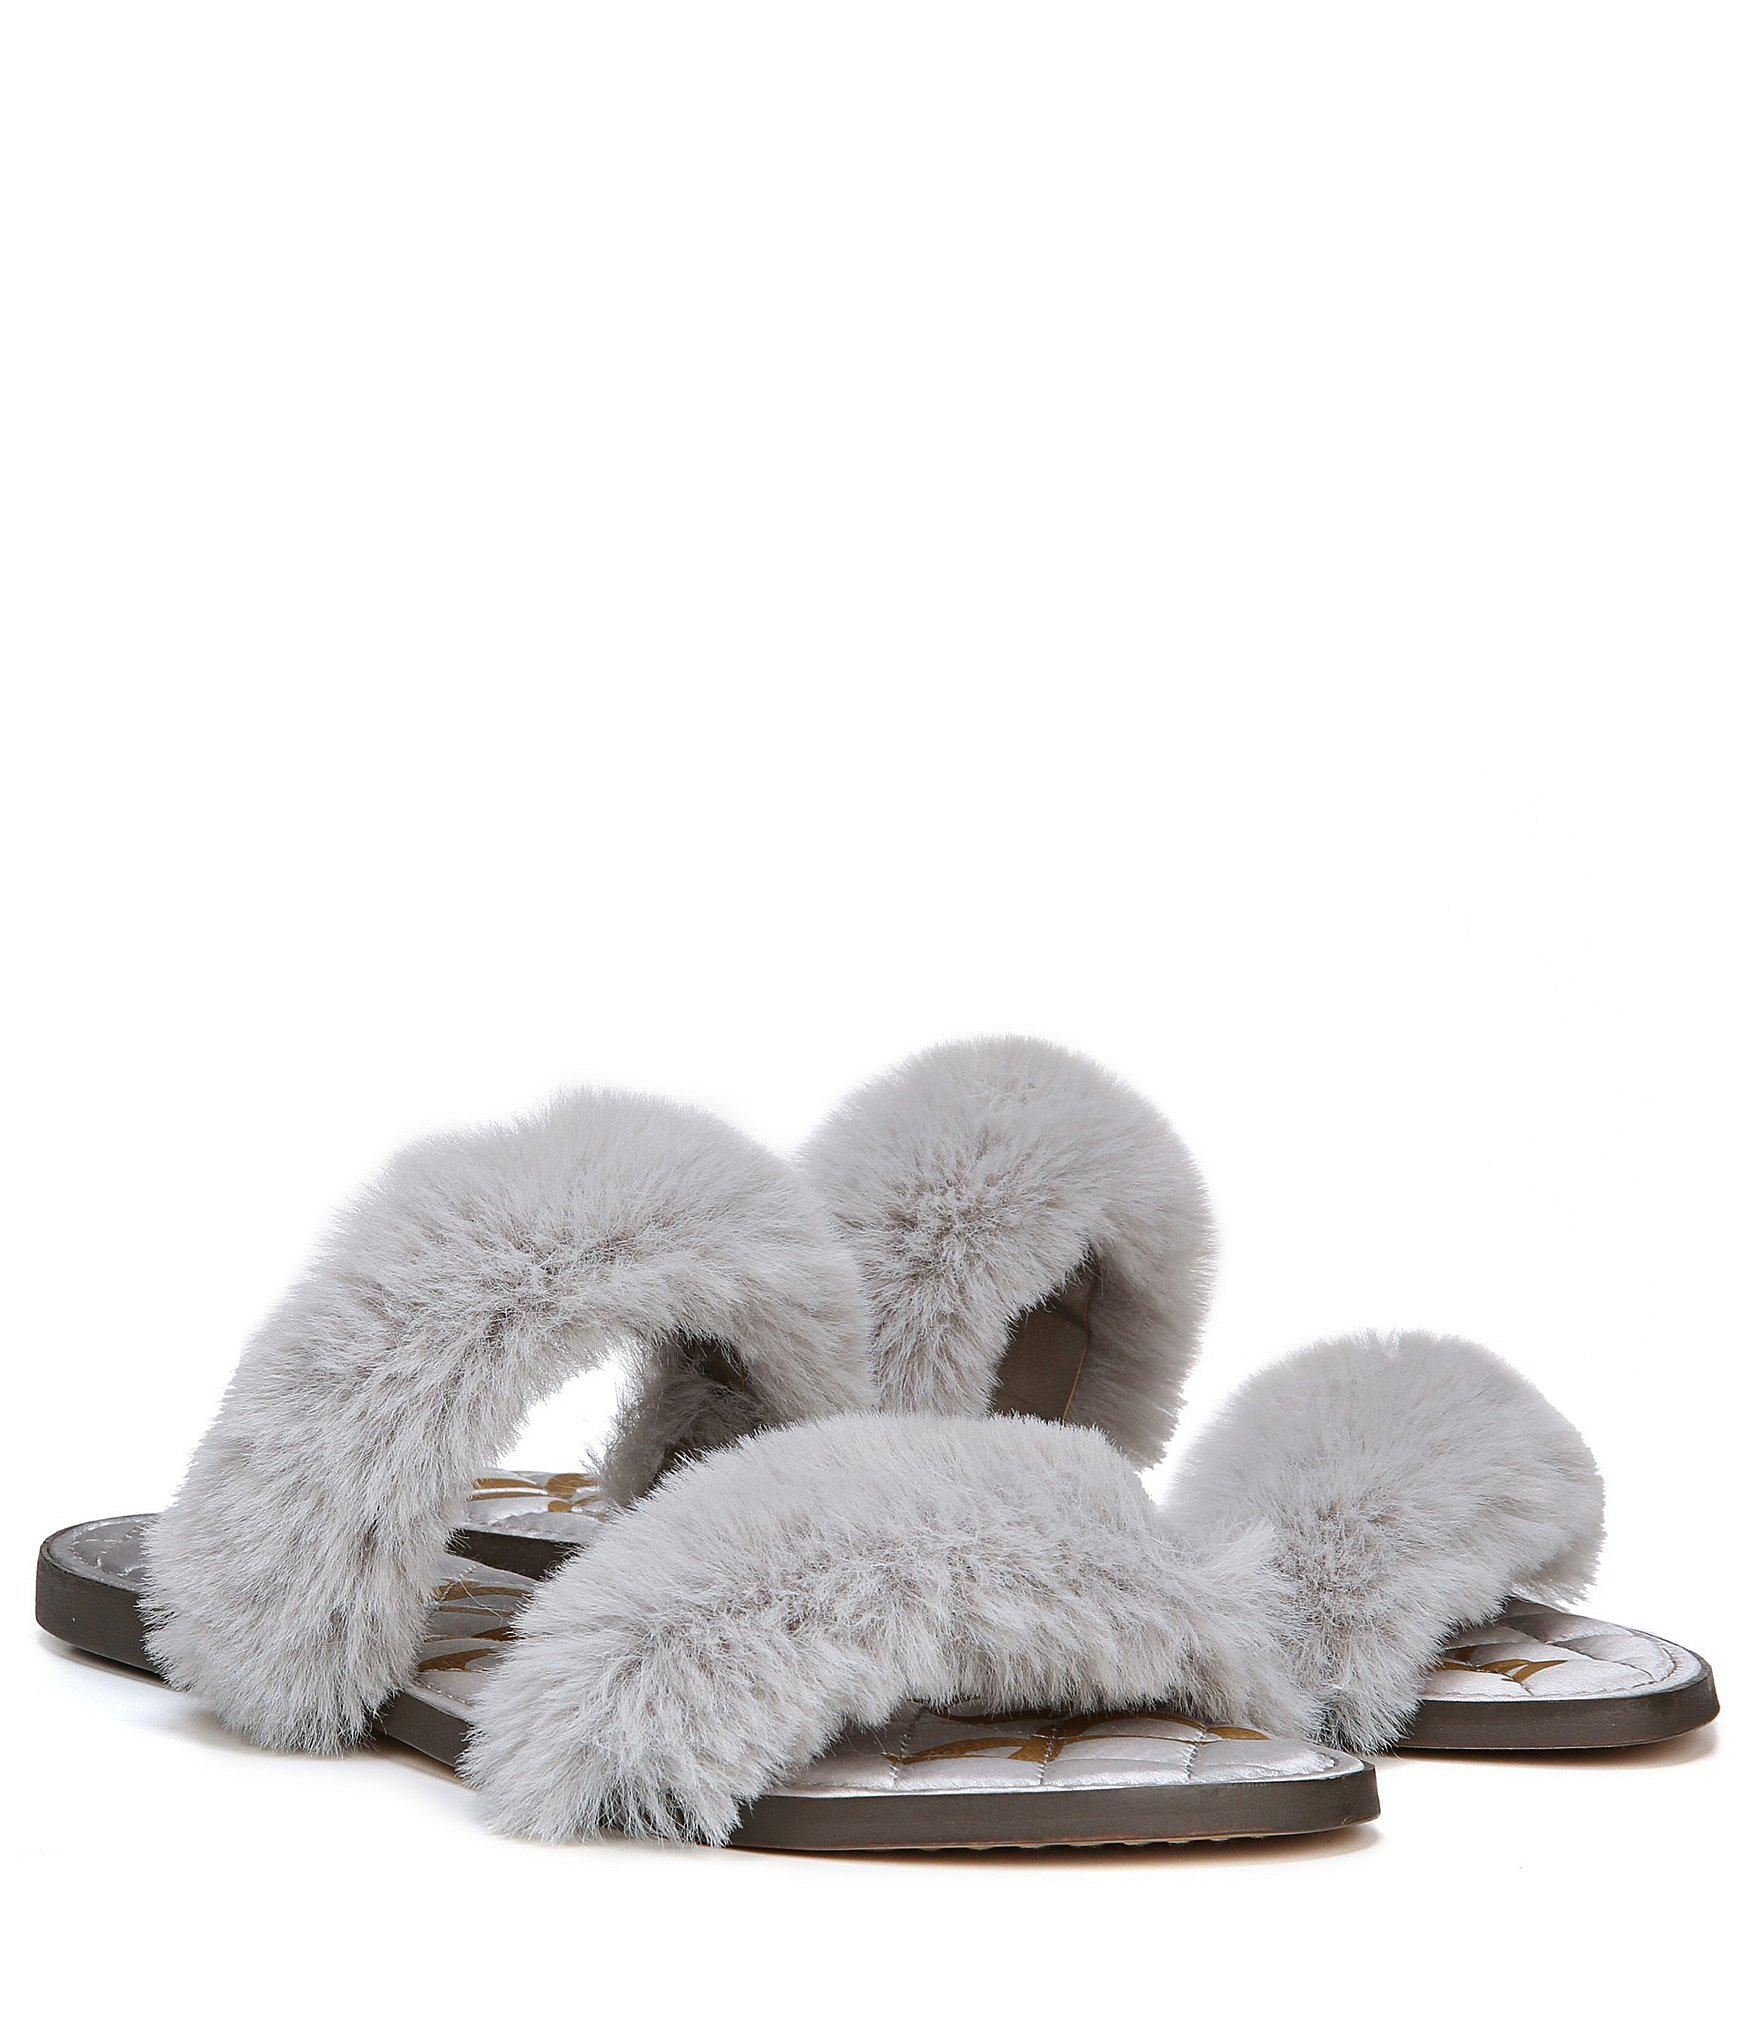 31832b3b681c Lyst - Sam Edelman Griselda Faux Fur Slip On Sandals in Gray